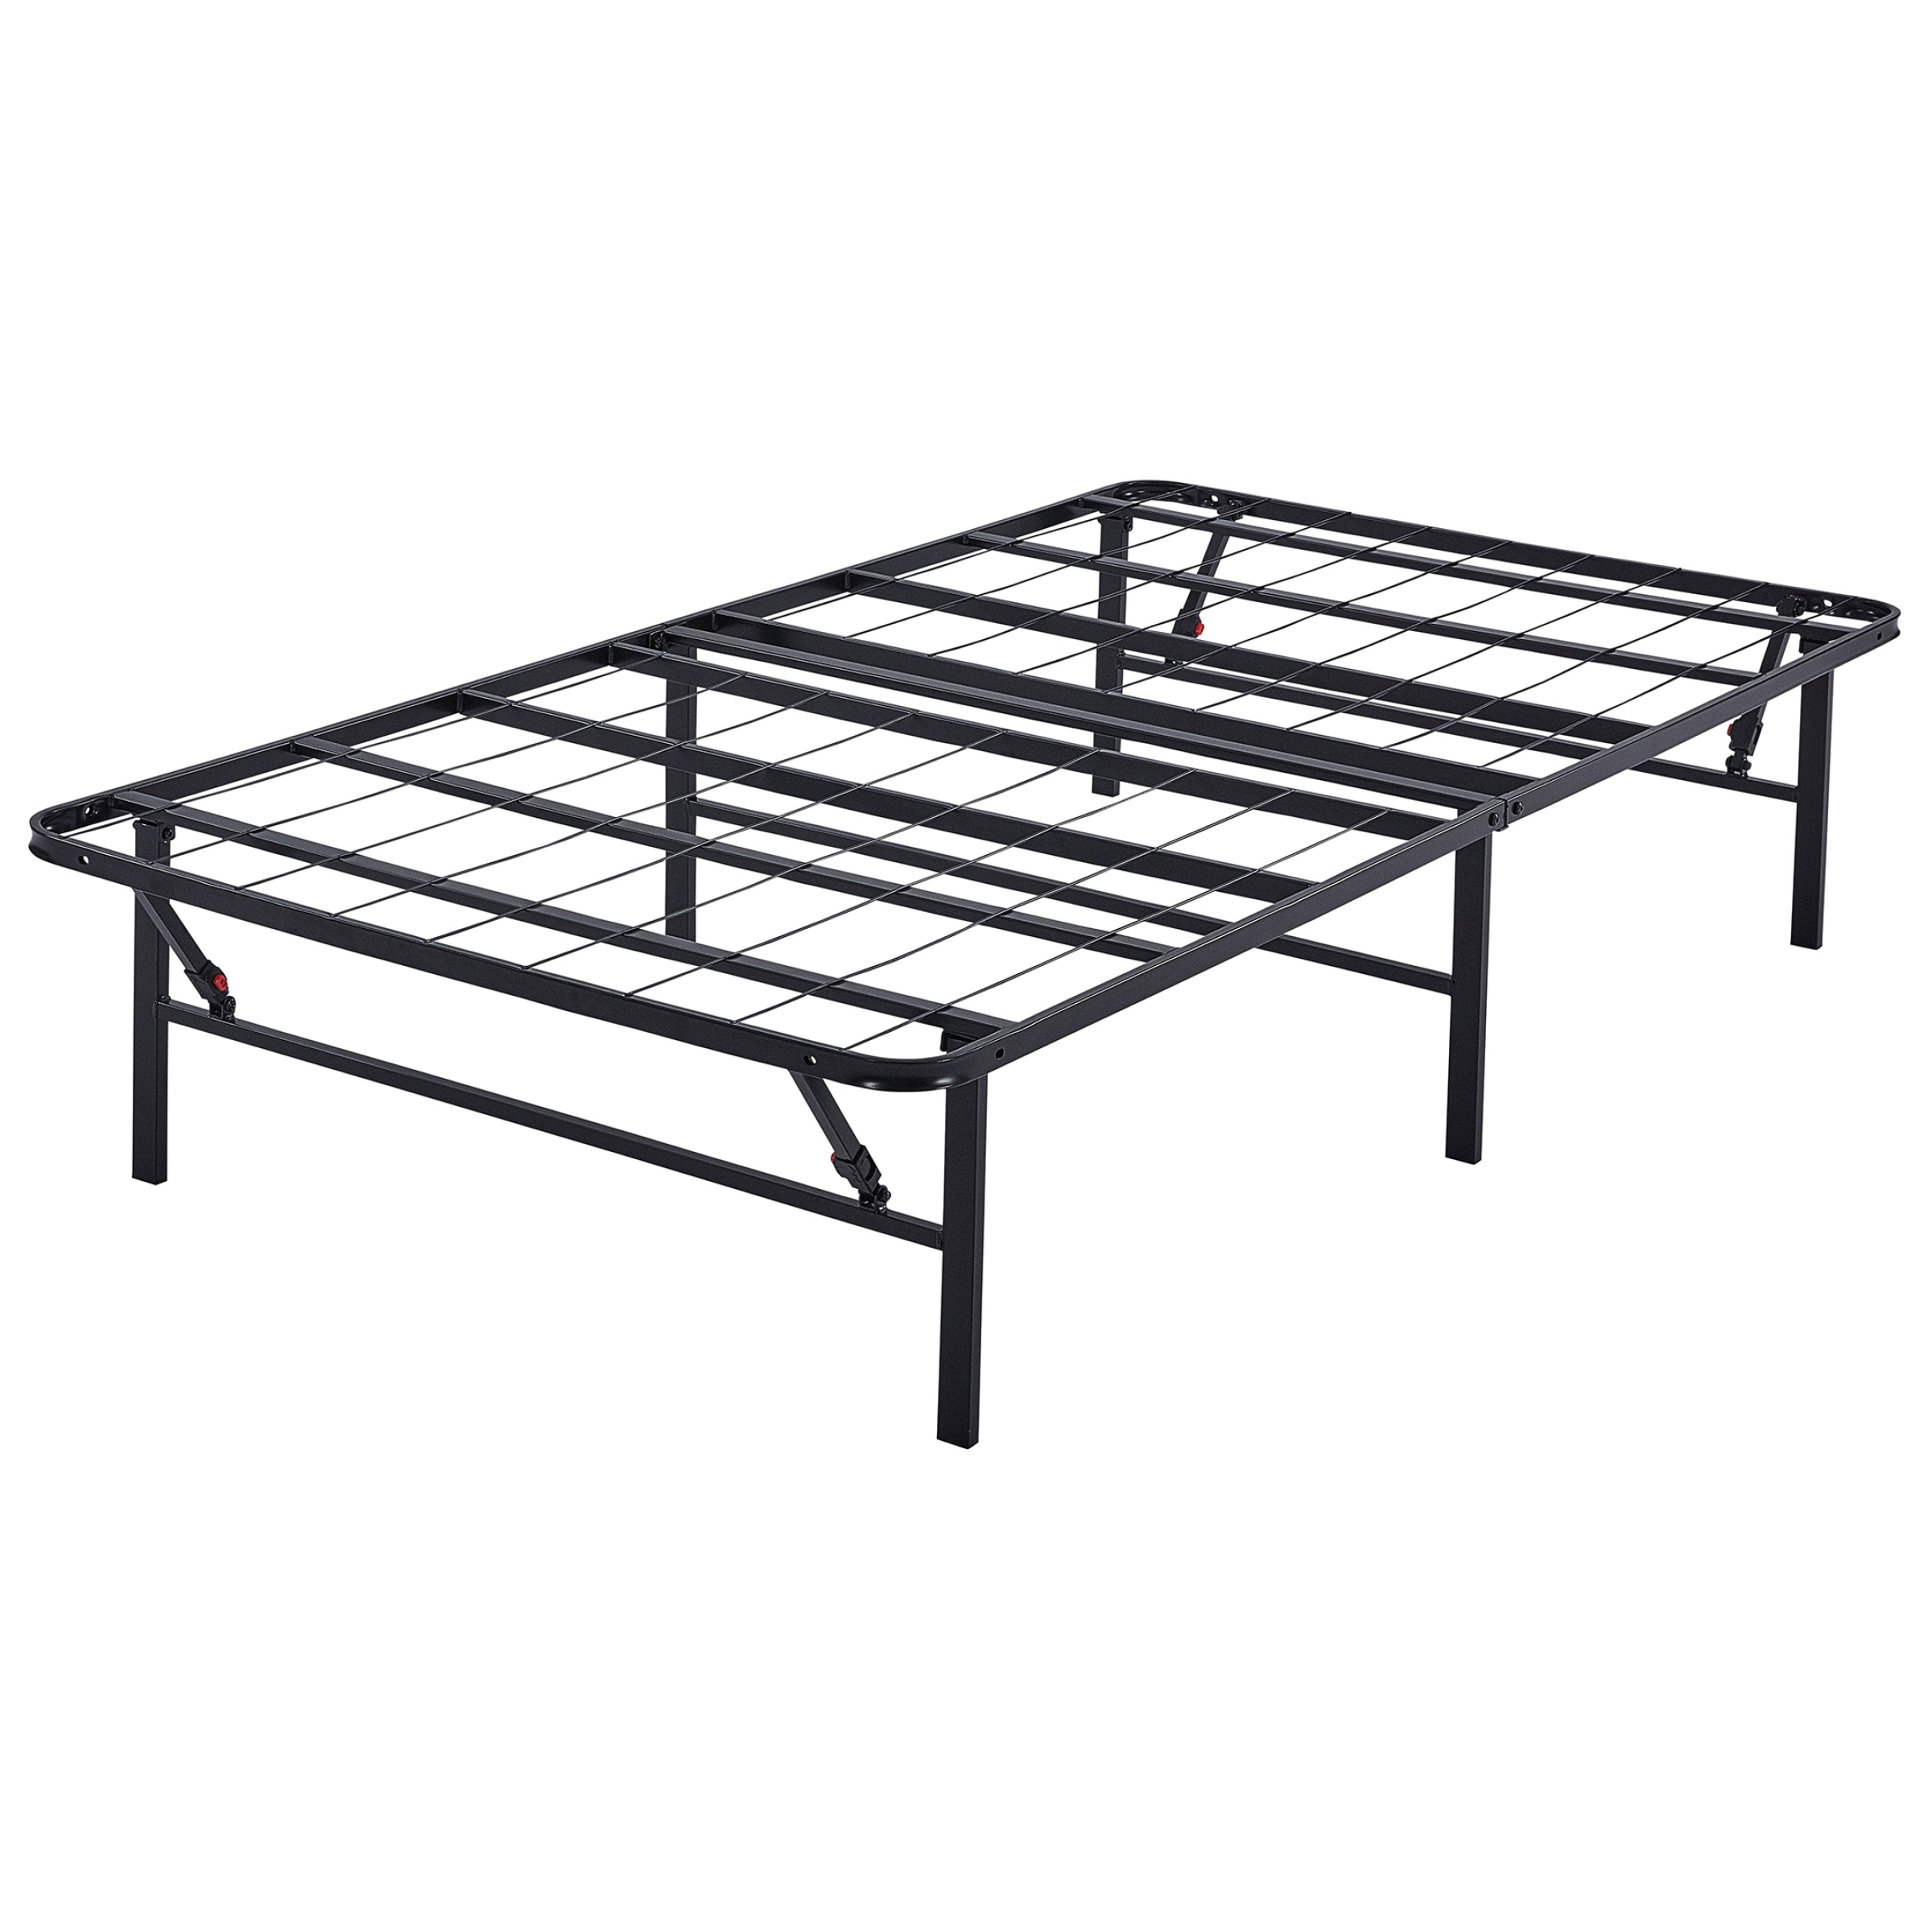 "Mainstays 14"" High Profile Foldable Steel Bed Frame, Powder-coated Steel"